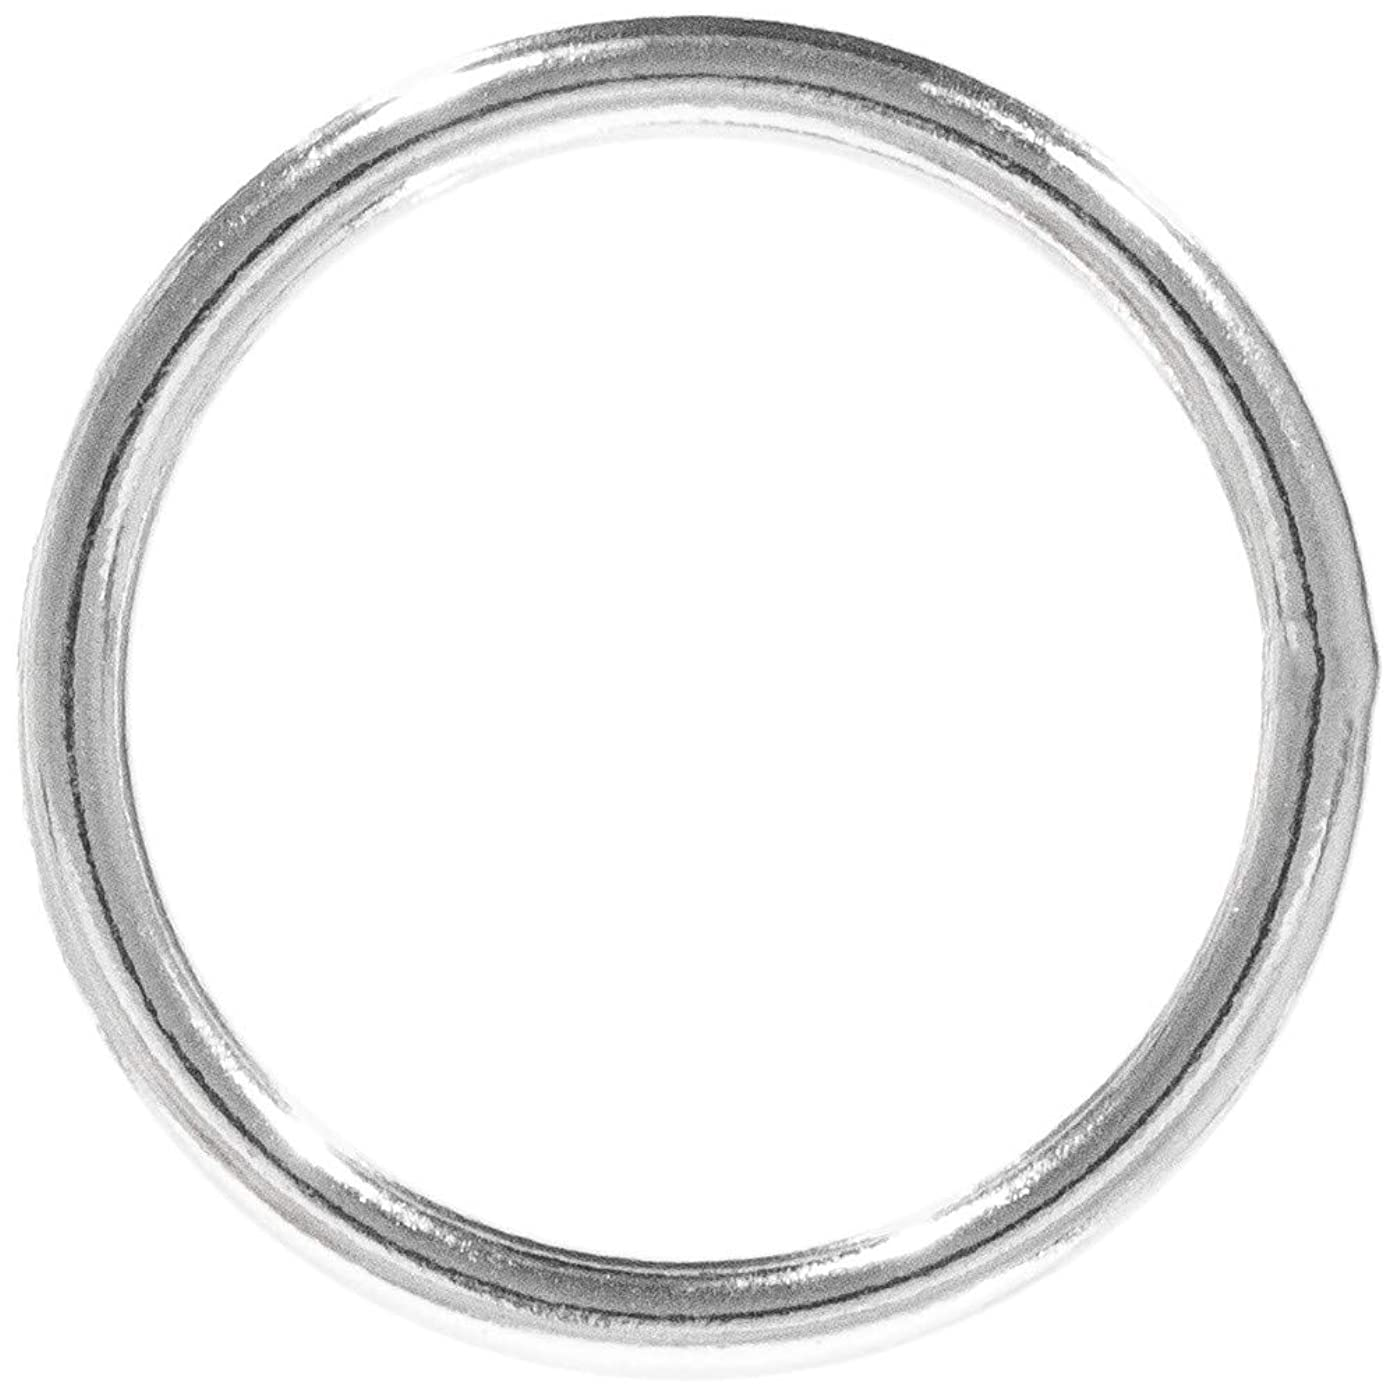 Craft County Metal O-Rings in Multiple Styles, Diameters, and Materials – Available in 5, 10, 25, 50, and 100 Packs